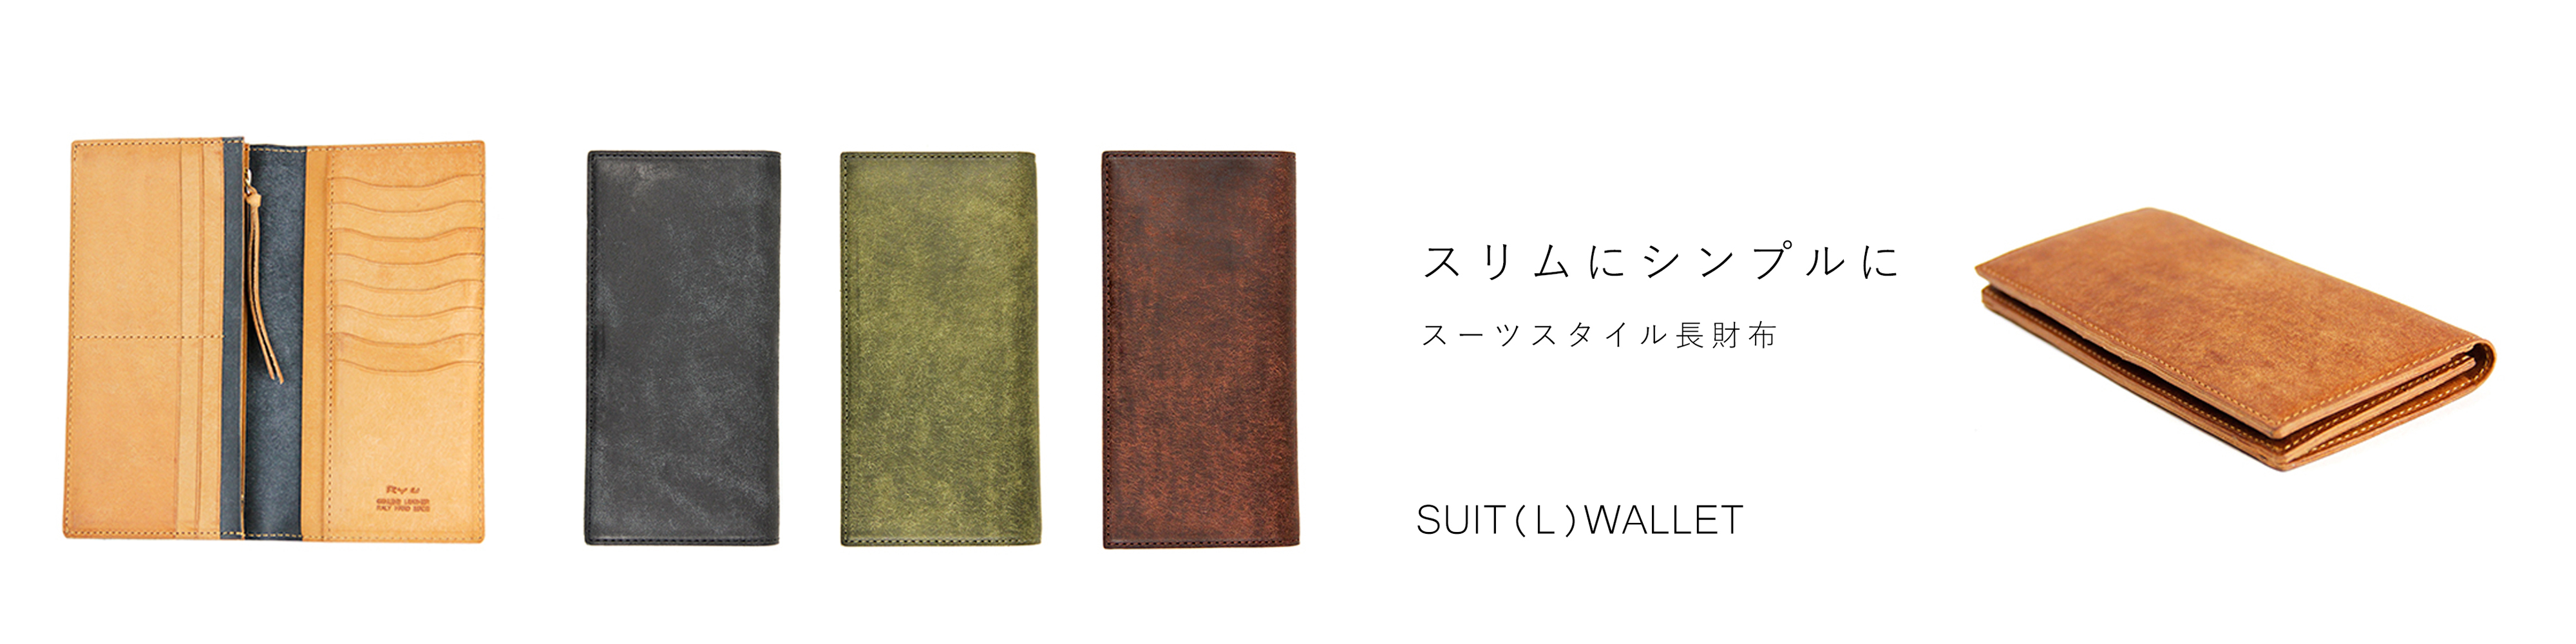 Pick Up / Ryu SUIT WALLET